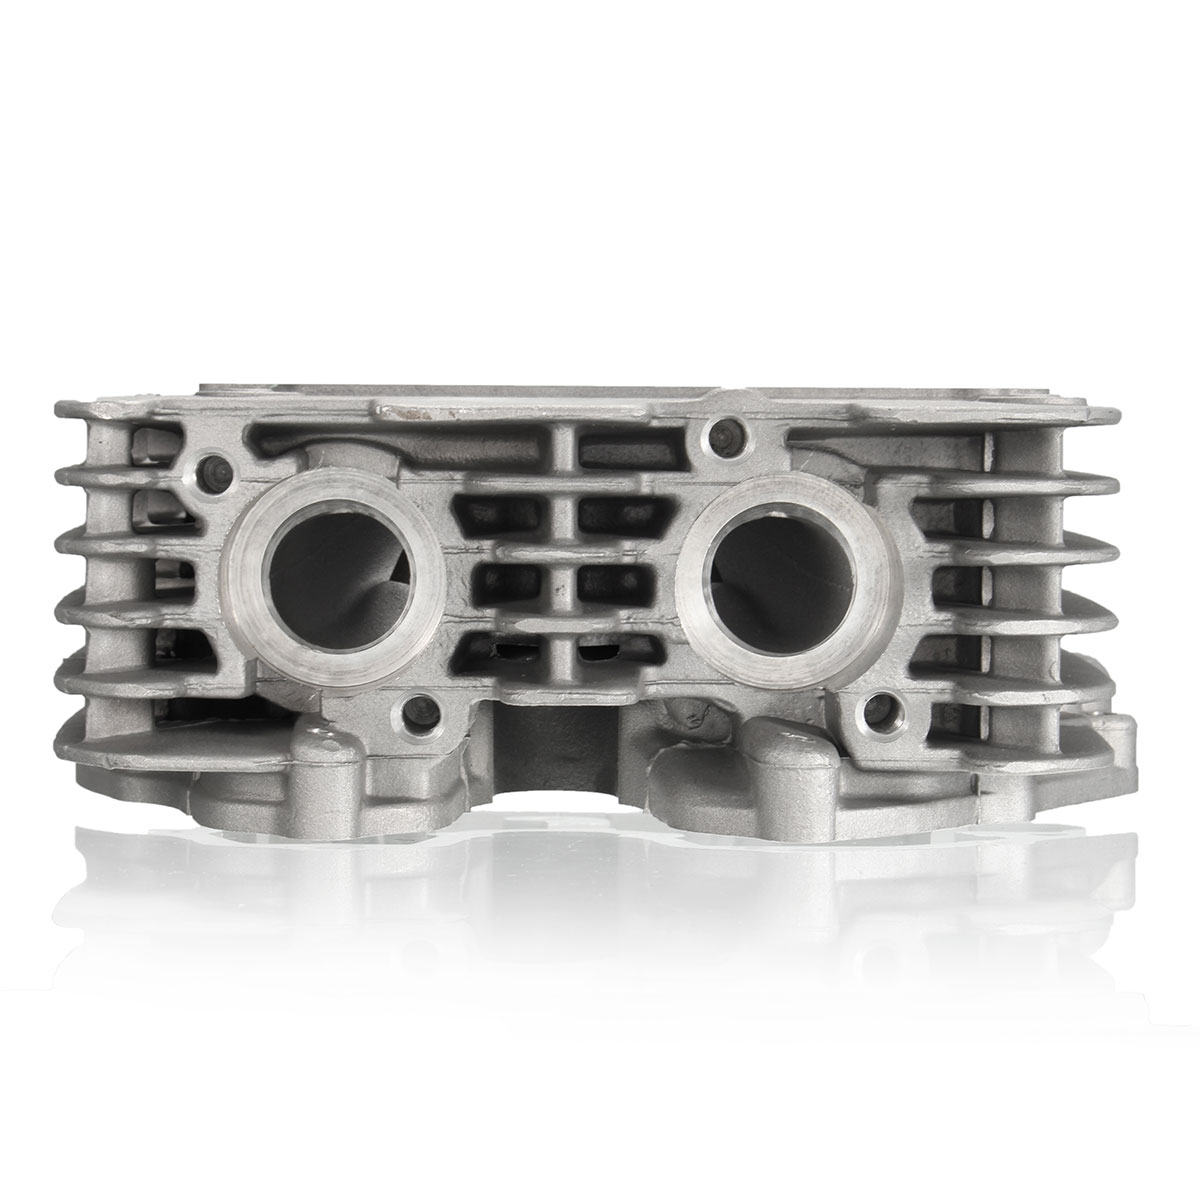 Cylinder Head Valve Cover For Motorcycle Honda XR400R 1996-2004 12200-KCY-670